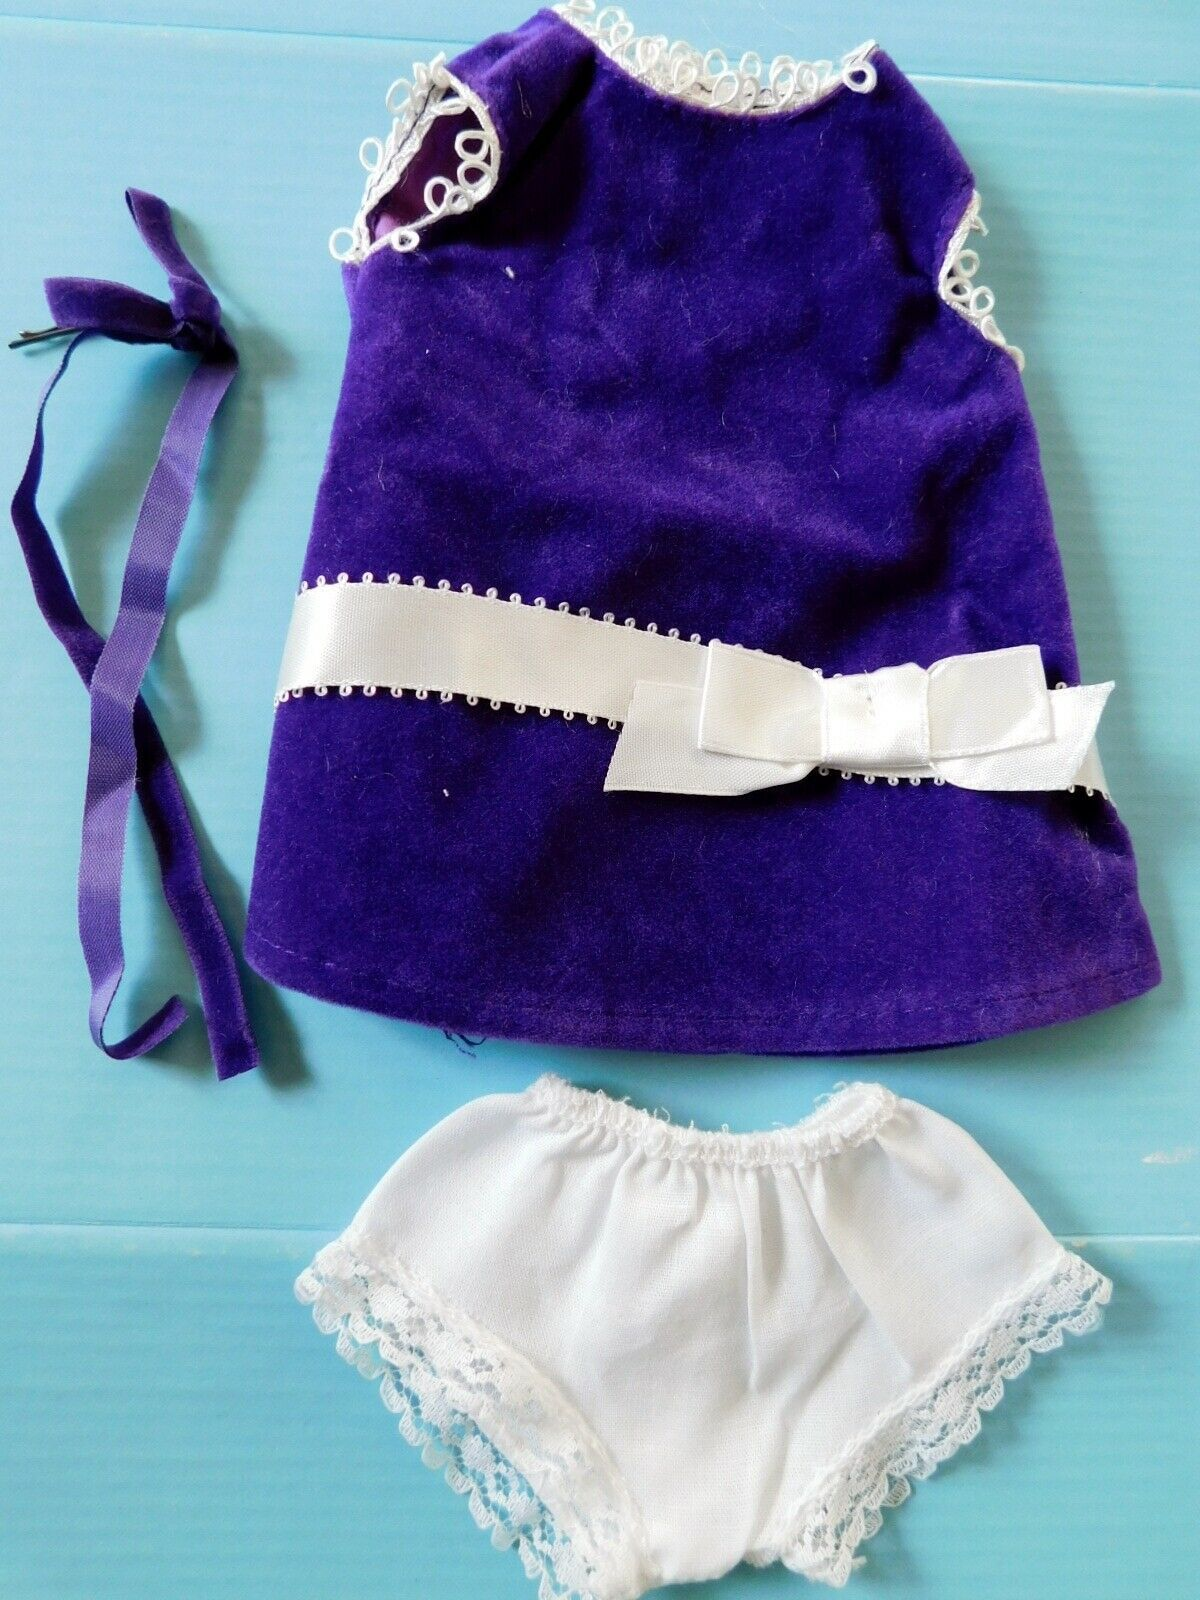 Primary image for 1970 IDEAL VELVET PURPLE DRESS w/HAIRBOW & PANTIES Crisp Factory Overstock MIP